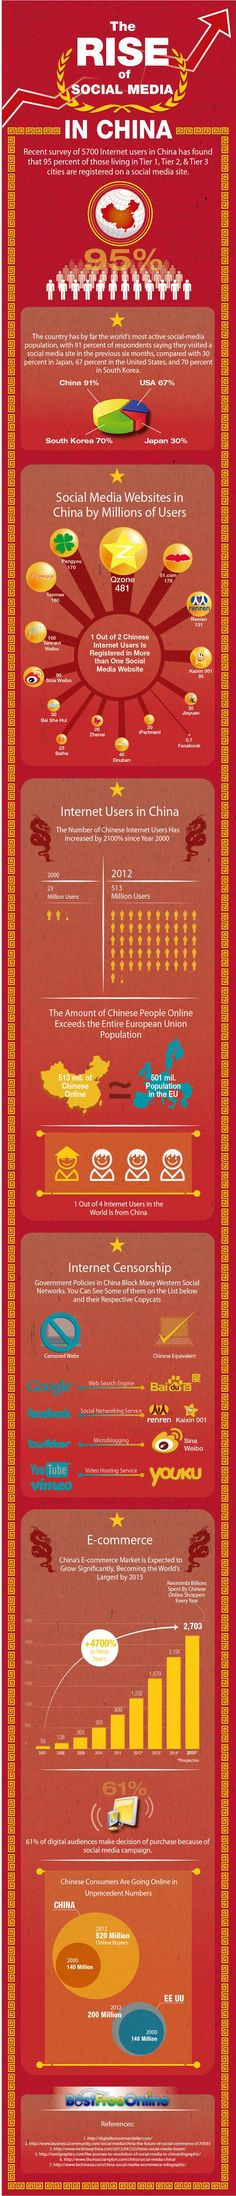 The Number of Chinese Internet Users Has Increased by 2100%! The Rise of Social Media in China